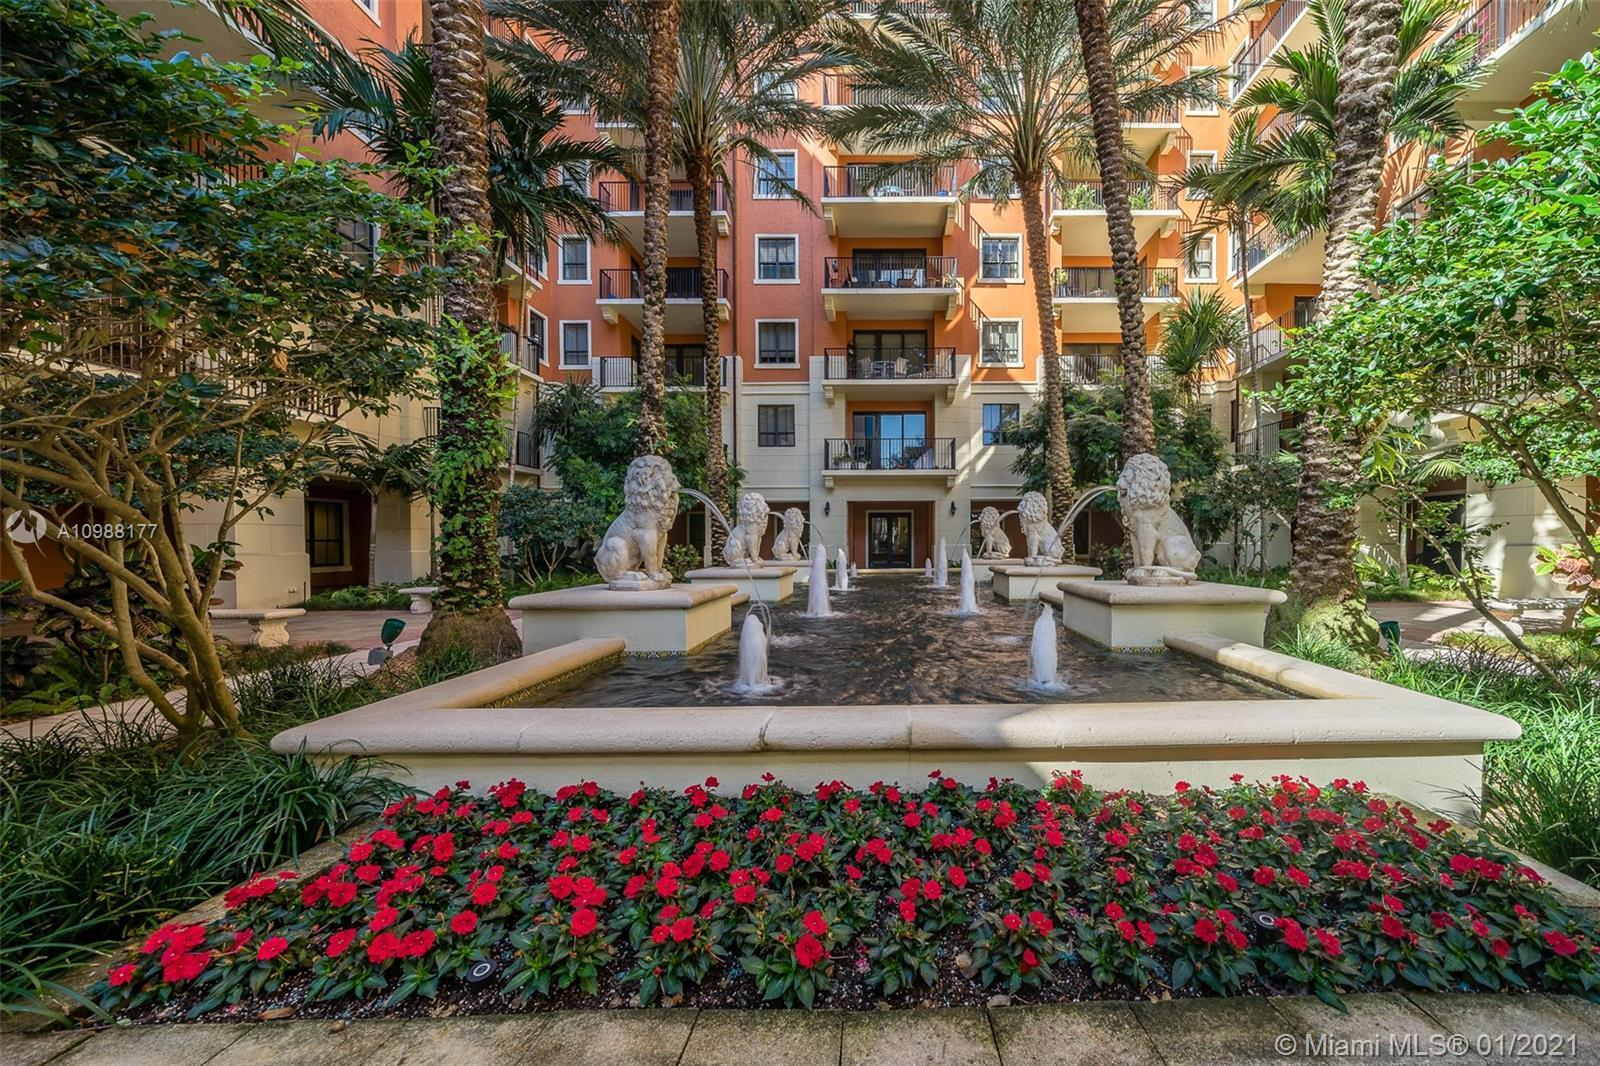 The most Gorgeous Apartment in the center of coral Gables, perfectly located in a nice and quiet bui